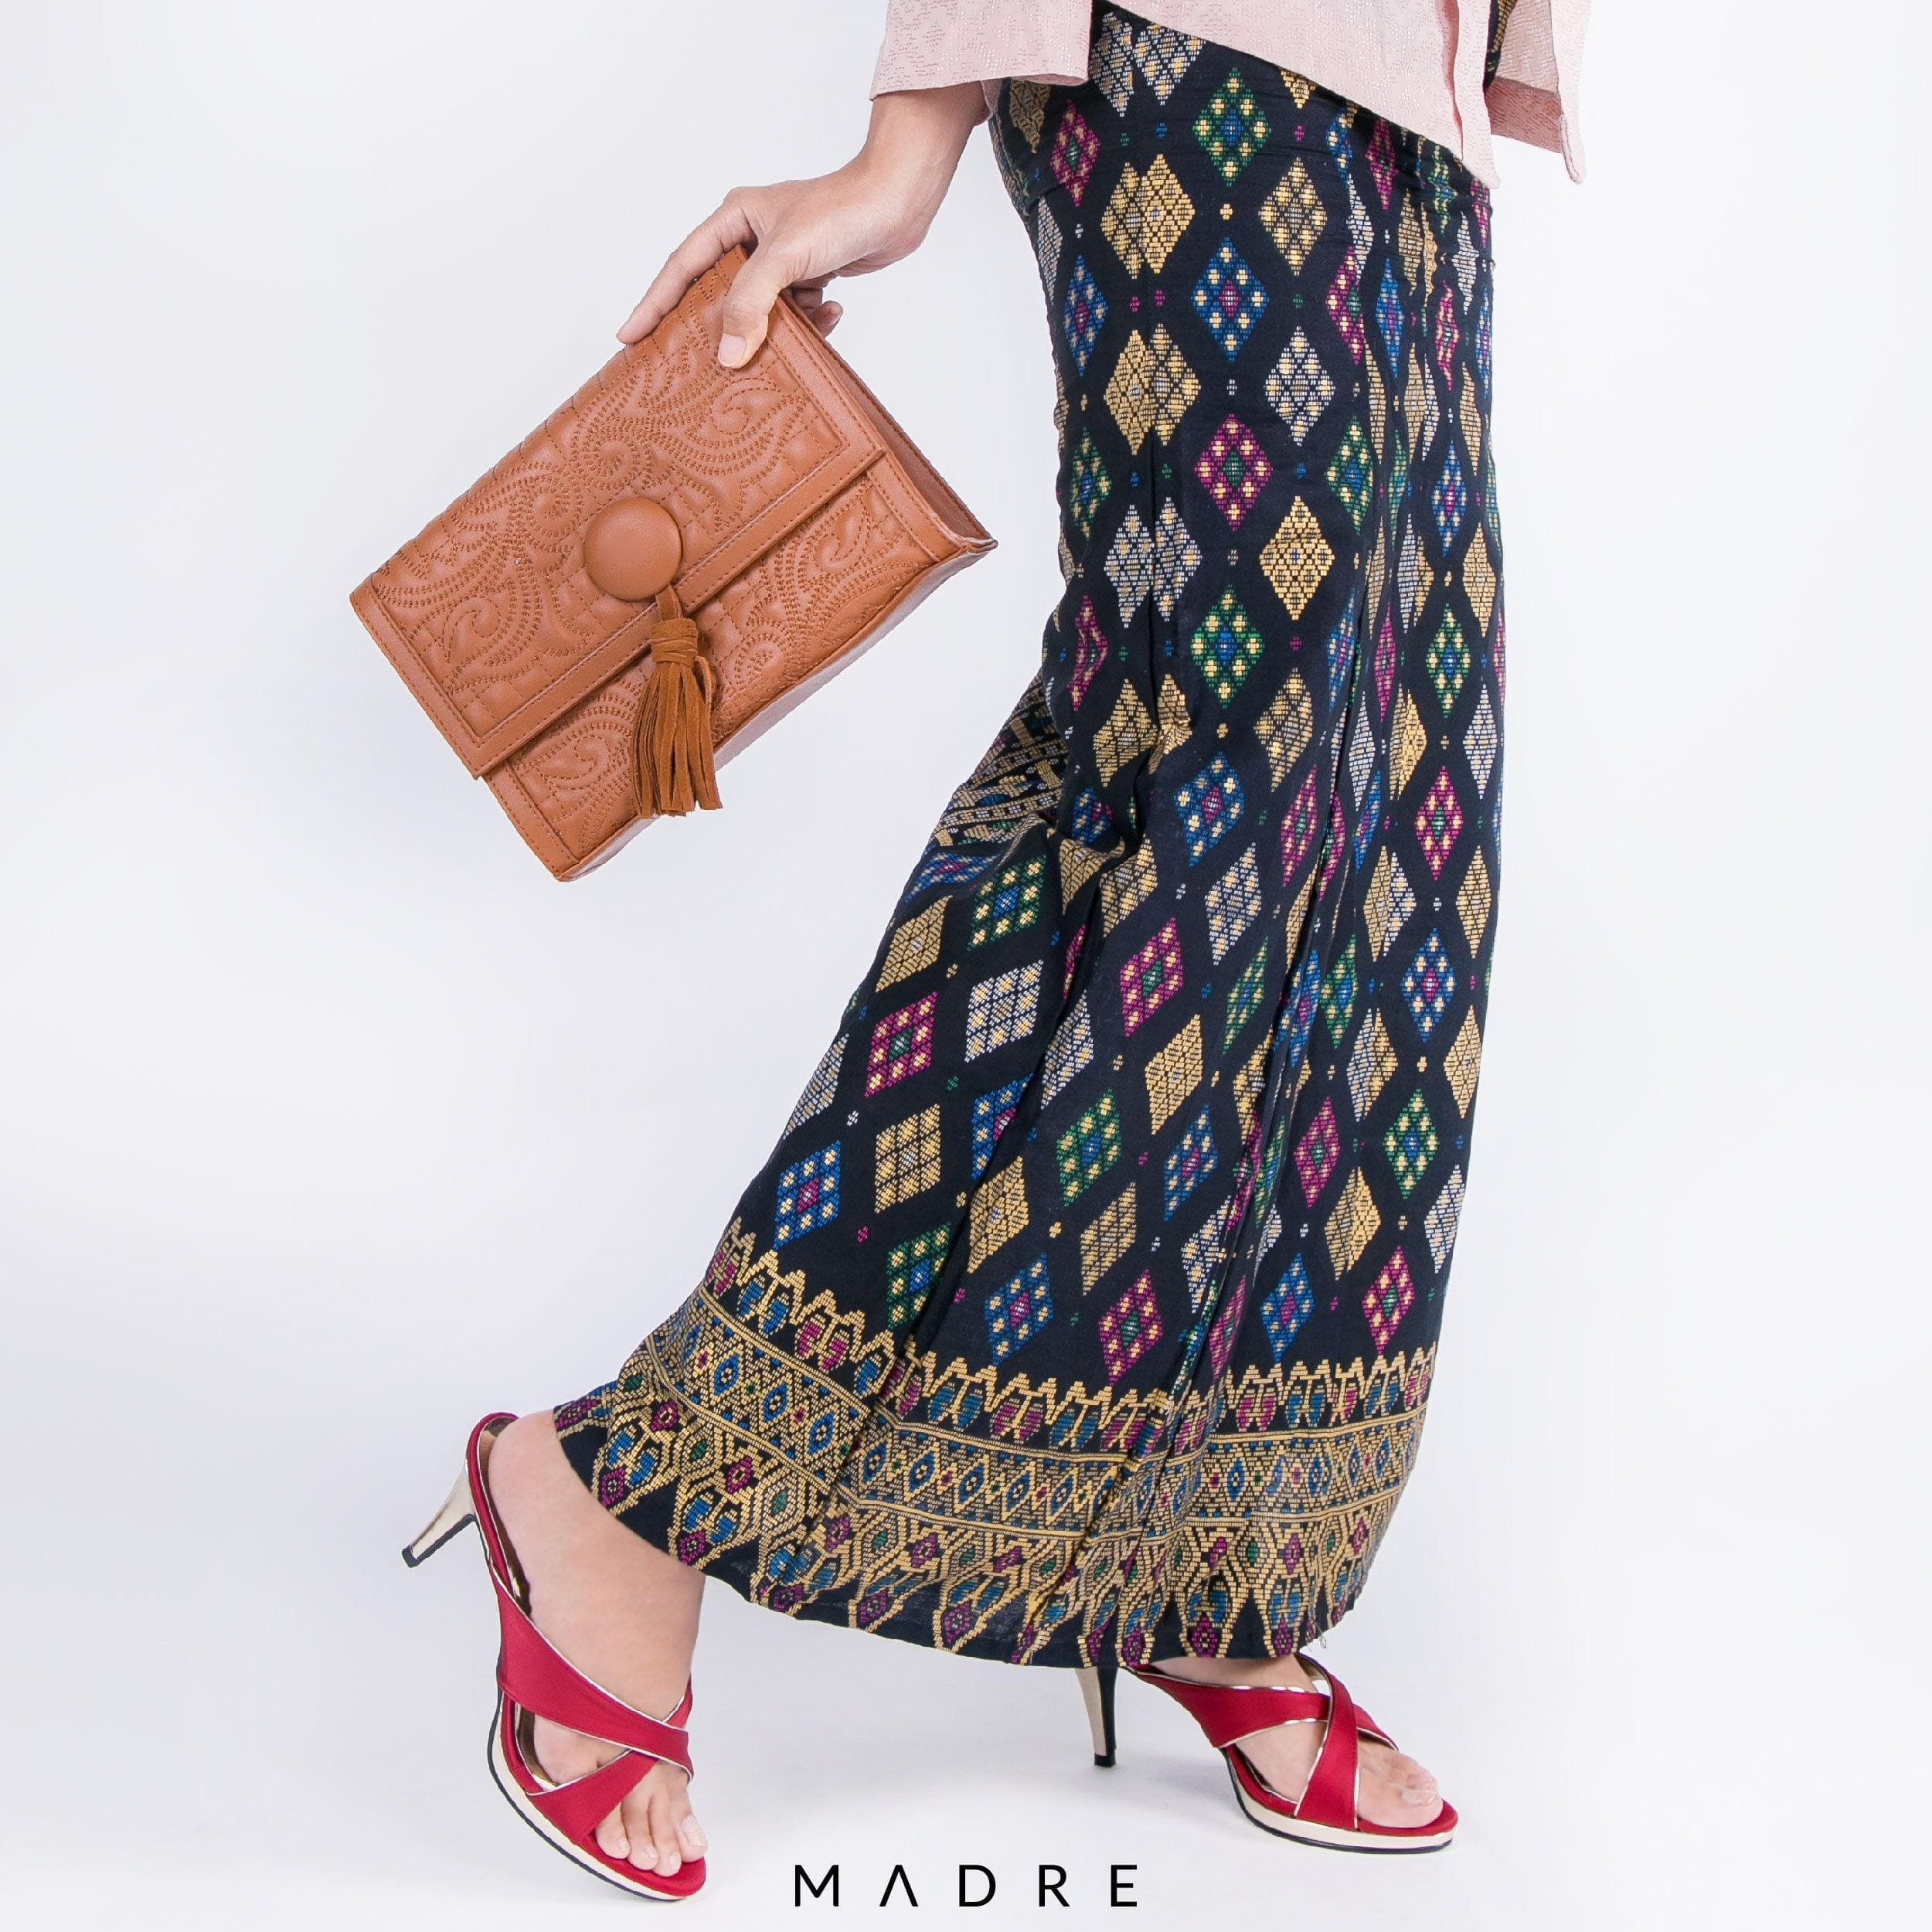 Saloma Heels Madre Collection